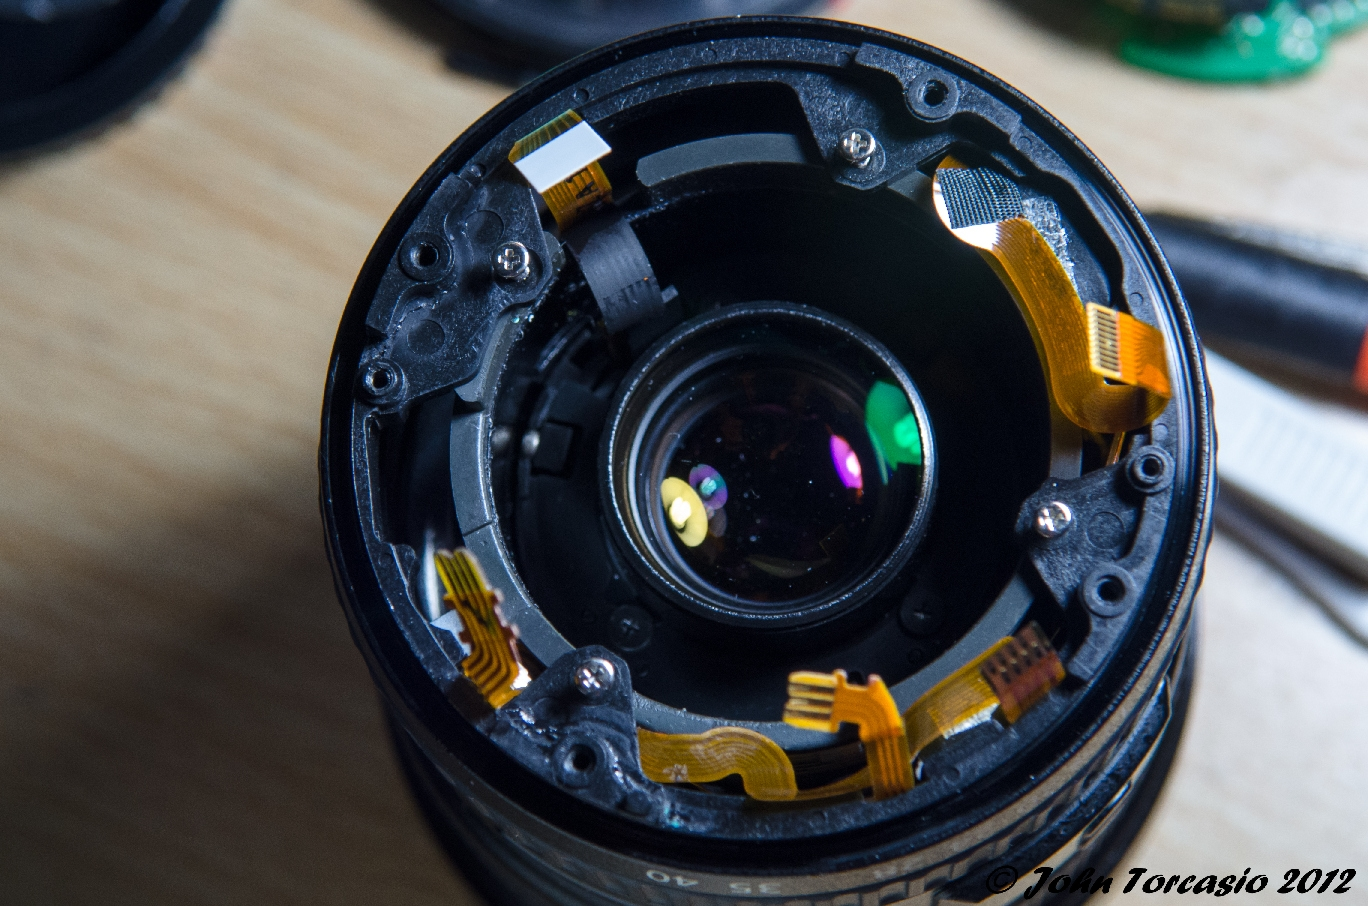 Canon Lens 17-40mm EF f4L USM Circuit board removed